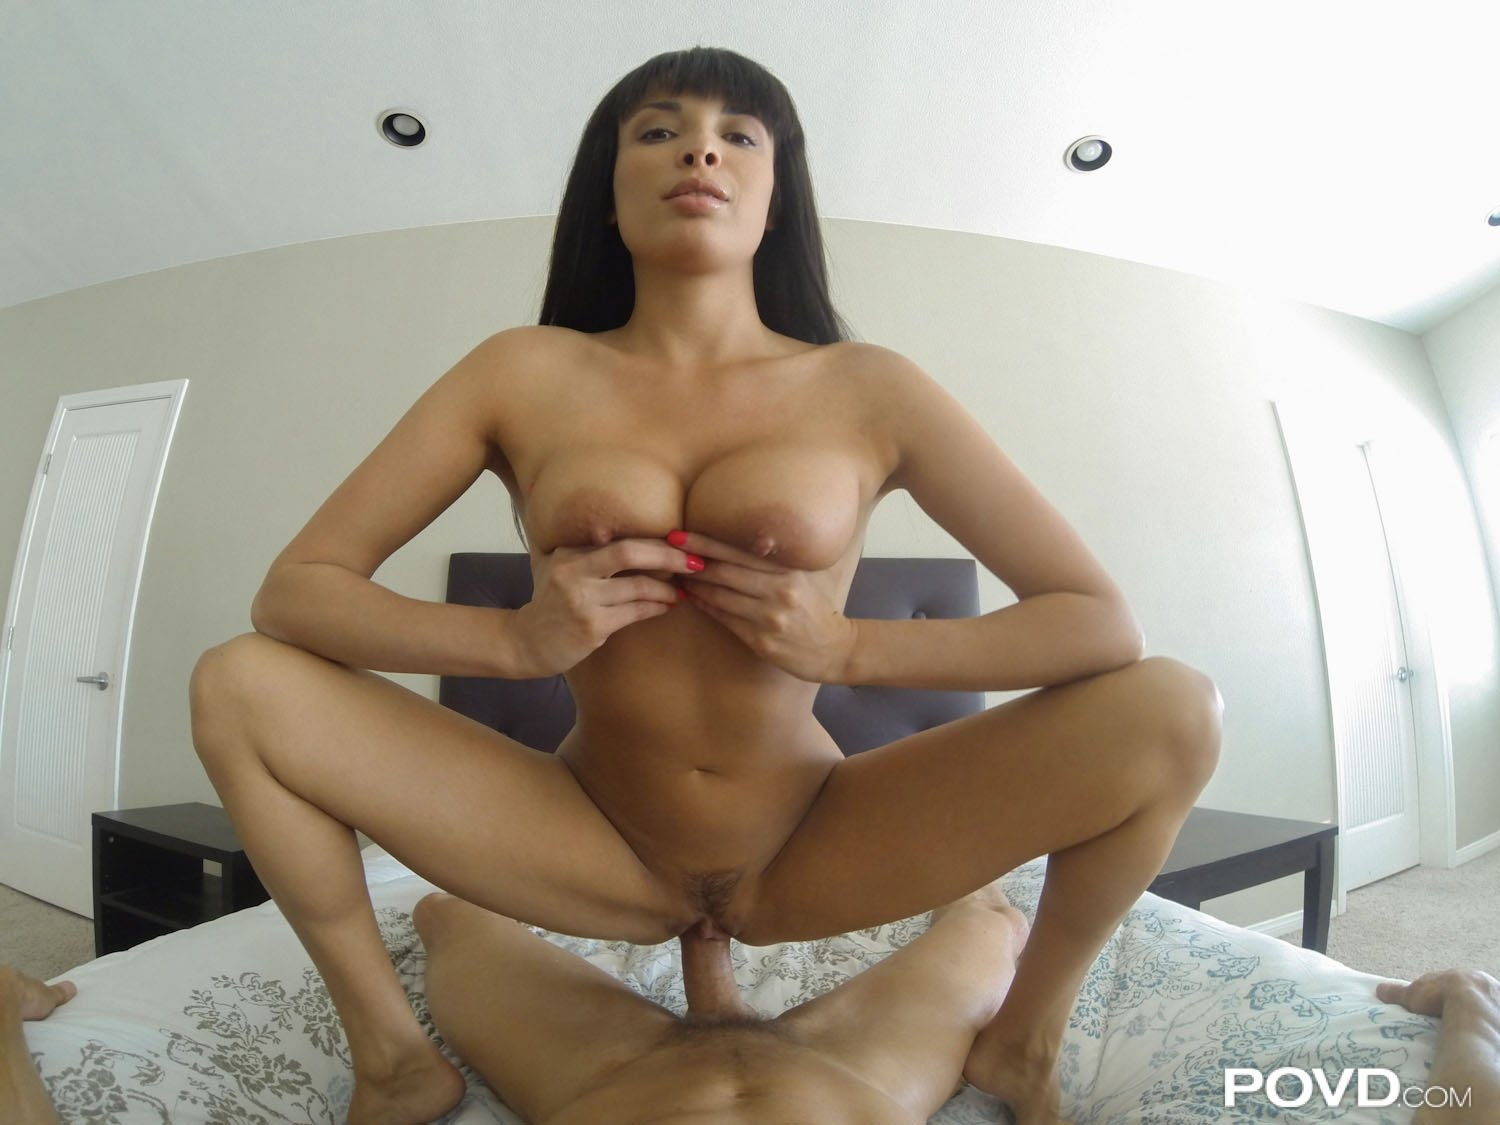 Private sex video chat #1